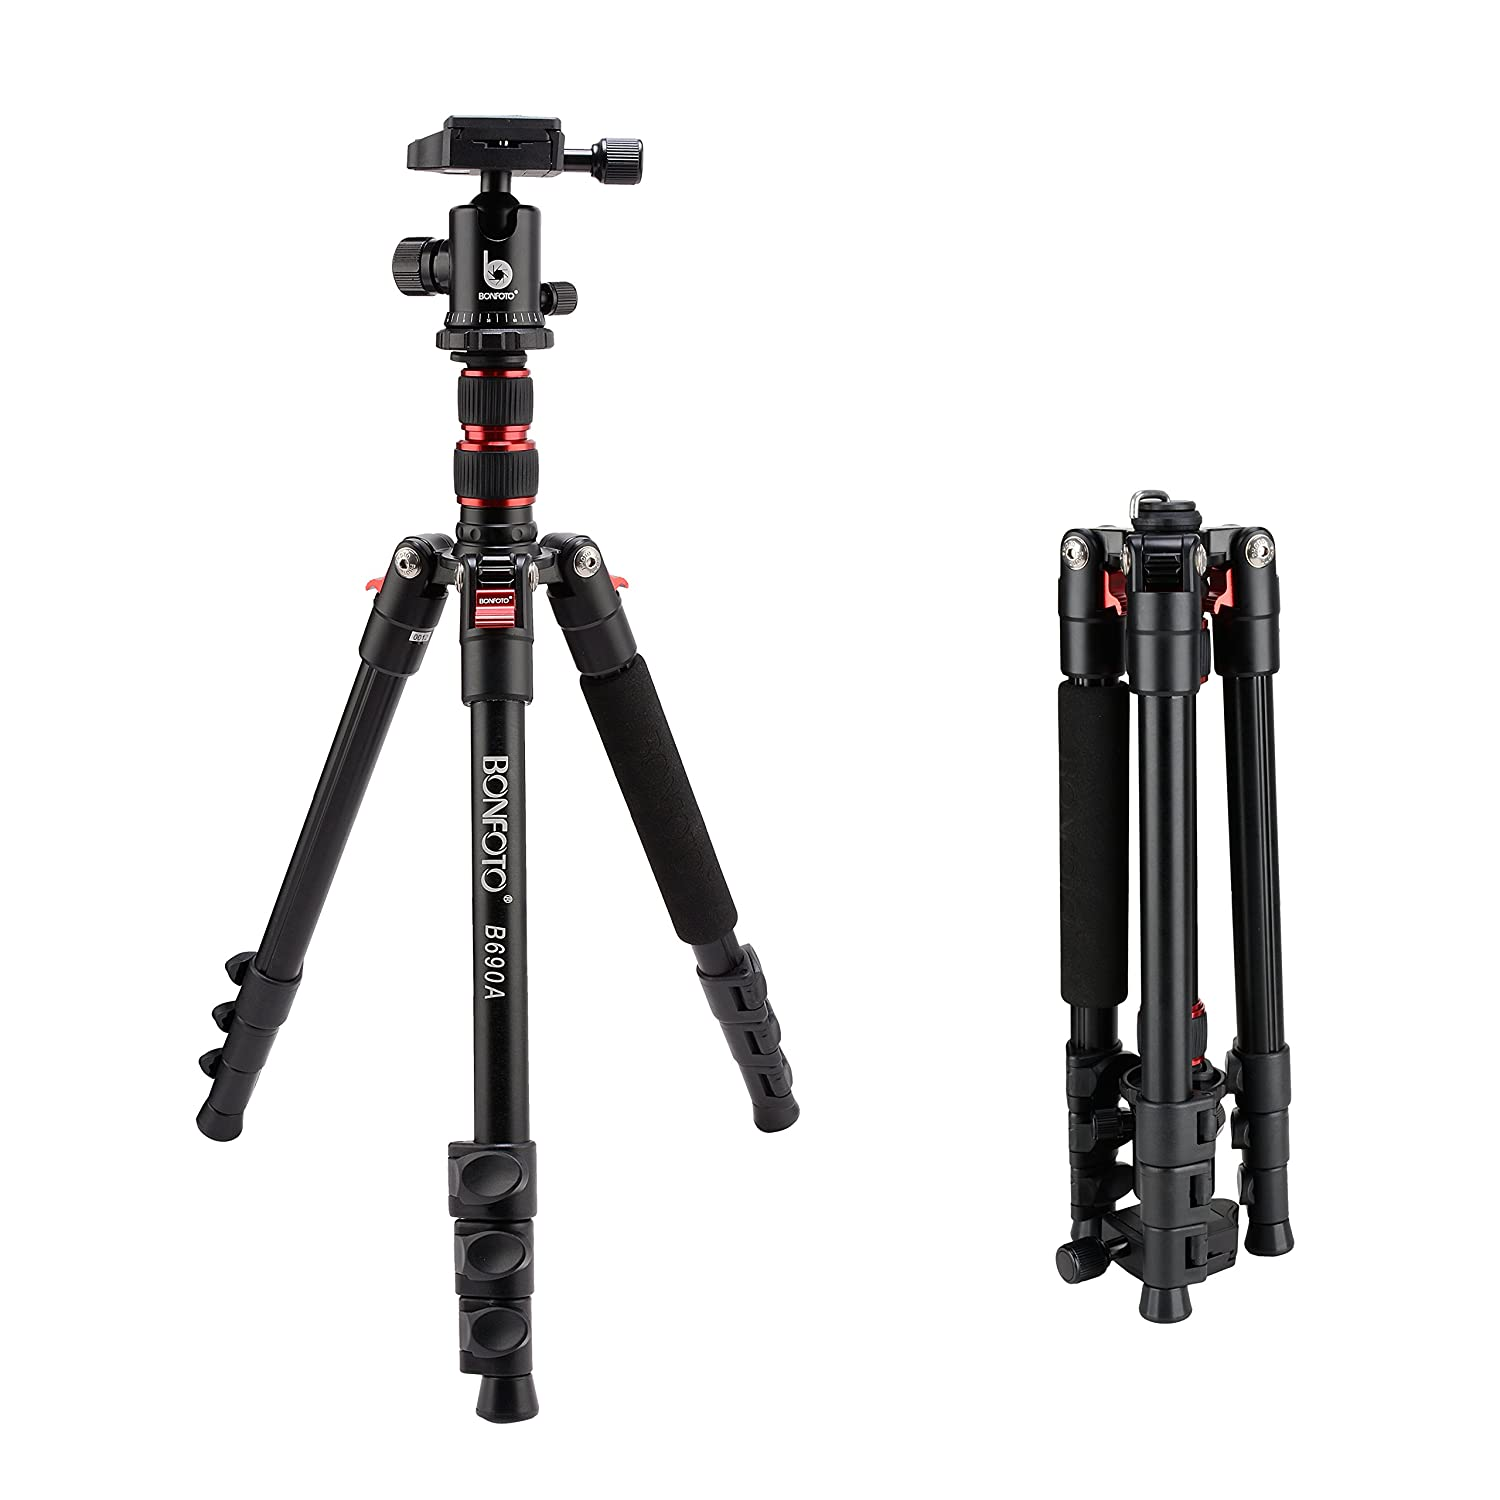 """BONFOTO B690A Aluminum Portable Heavy Duty Tripod With 1/4"""" Quick Release Plate, 360° Ball Head And Bubble Level For Canon/Nikon/Sony/DSLR Camera Very Suitable For Travel"""